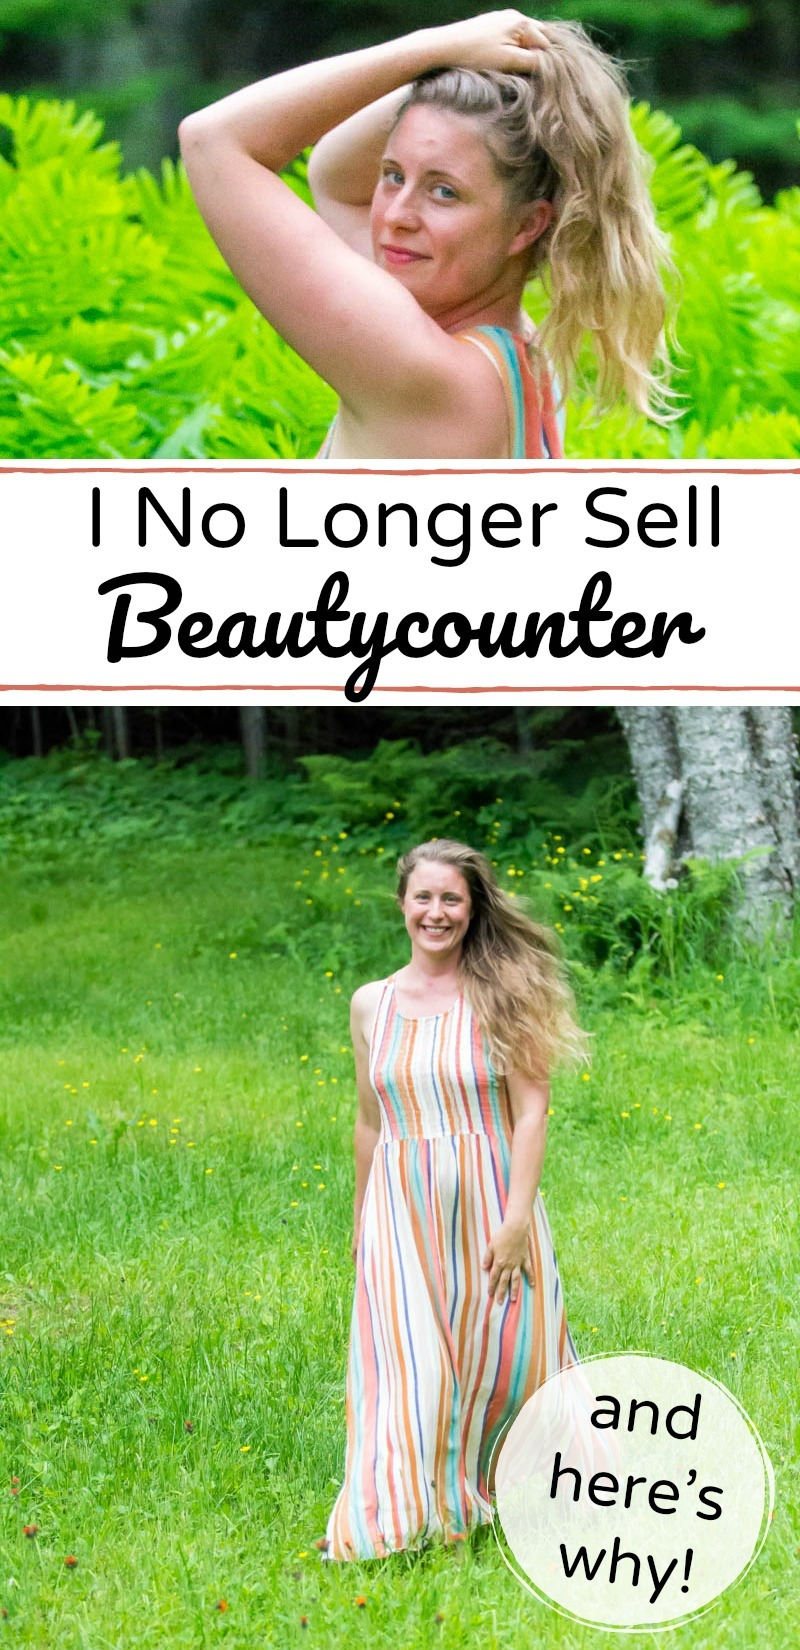 collage of images of a natural, happy woman outside with text overlay about beautycounter cosmetics and skincare